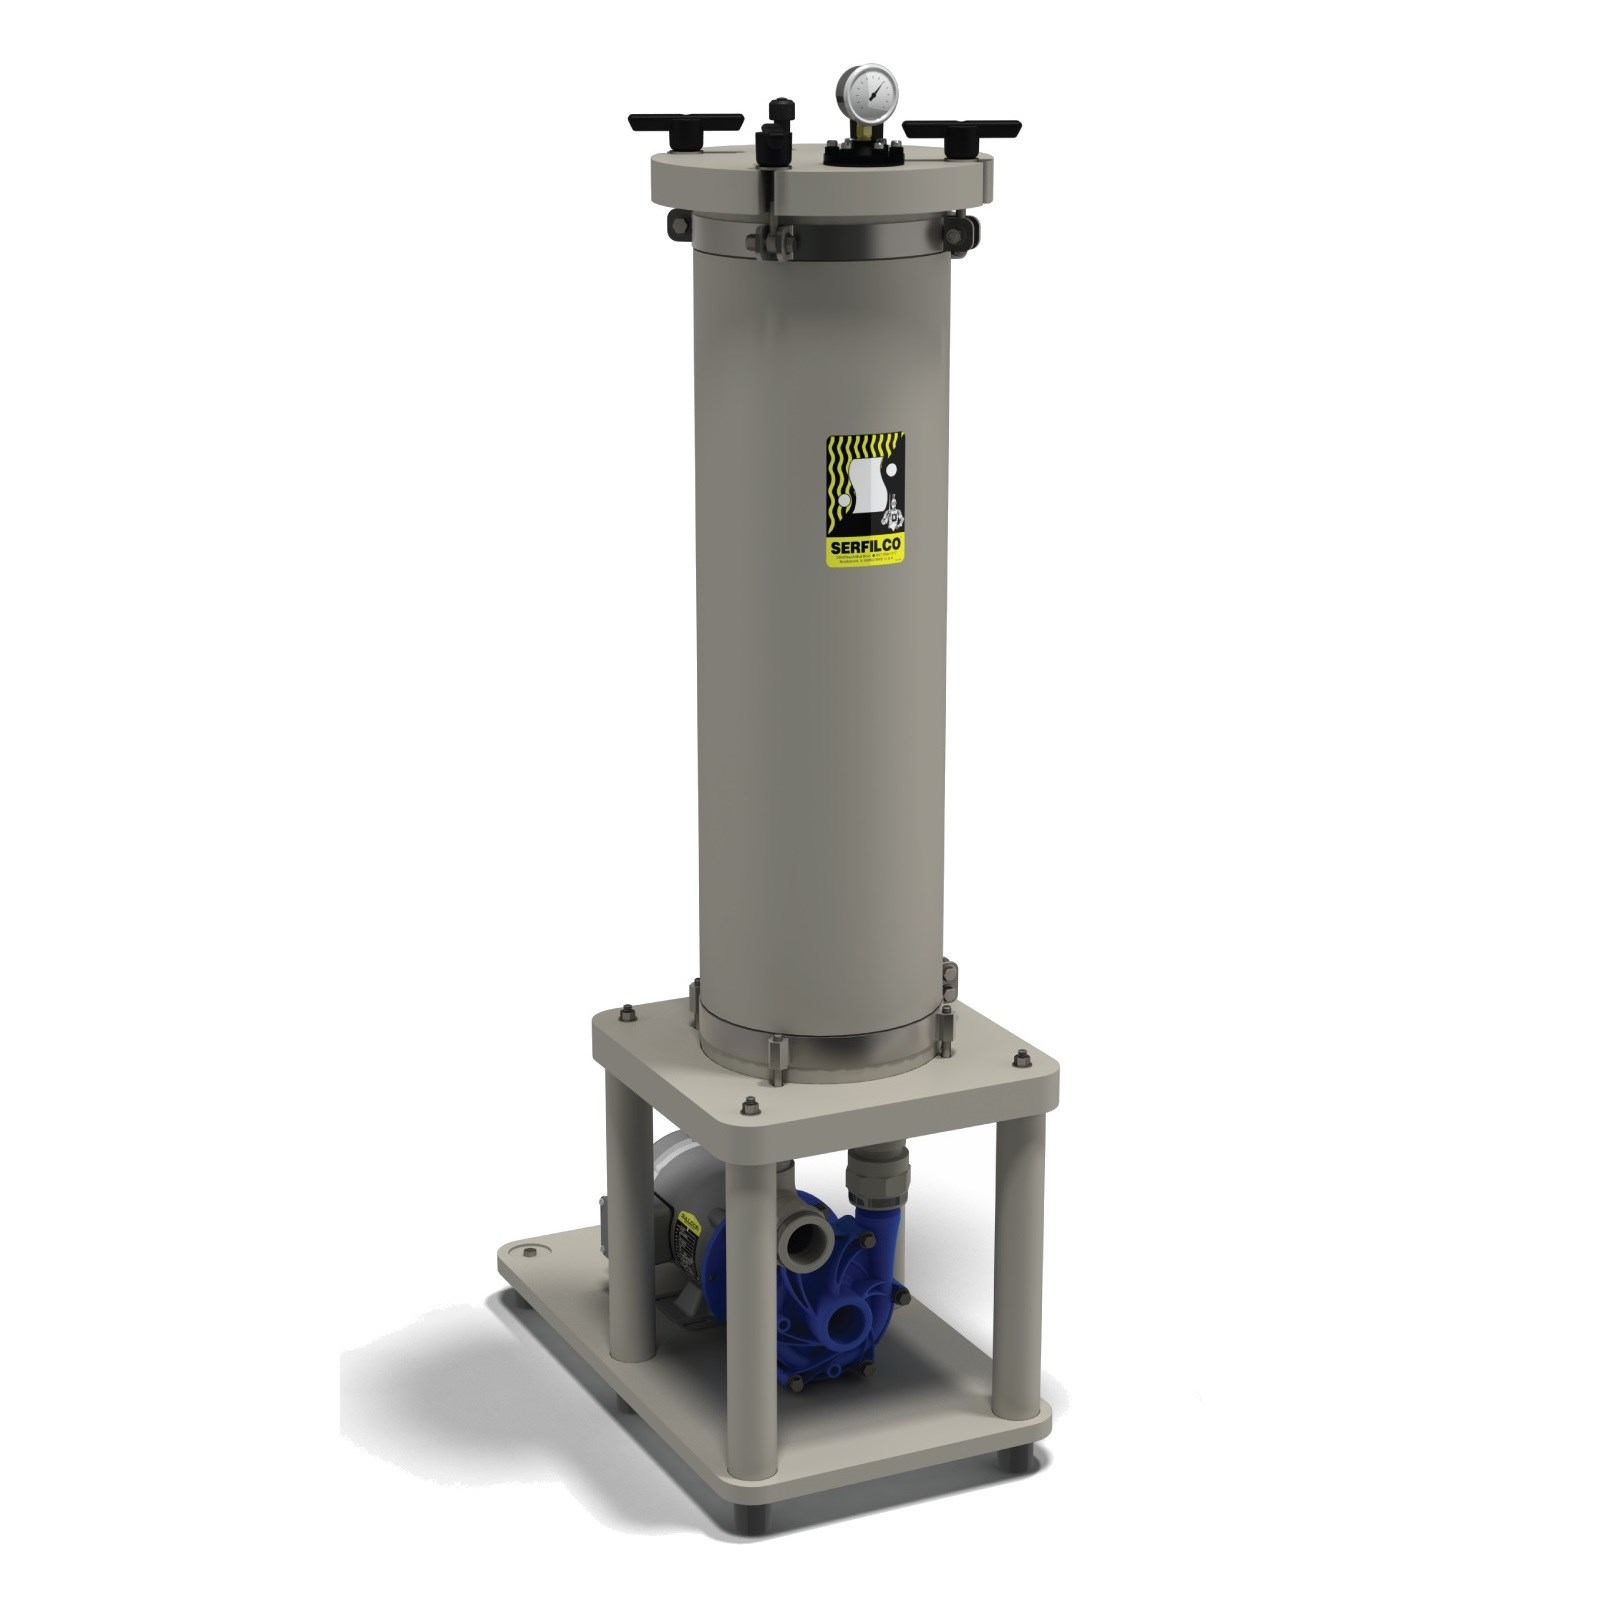 Space-Saver 'JM' Filtration System